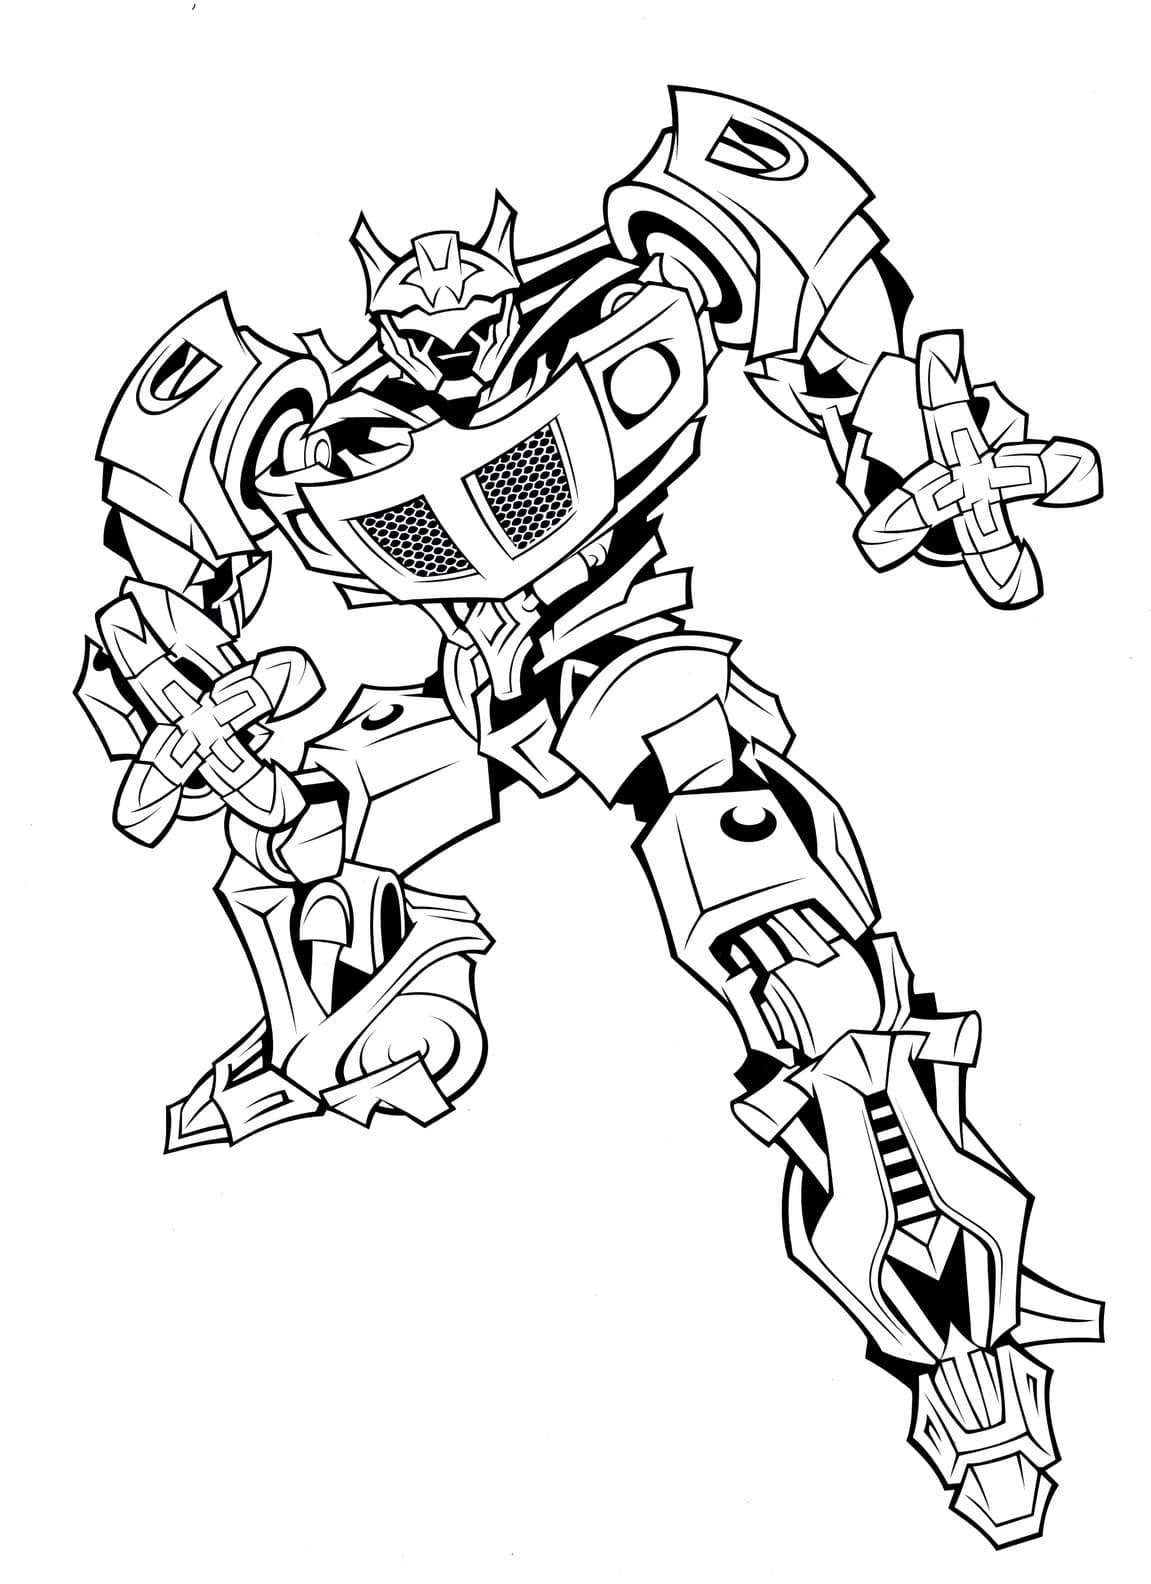 coloring pages transformers transformer coloring pages coloring pages to download coloring pages transformers